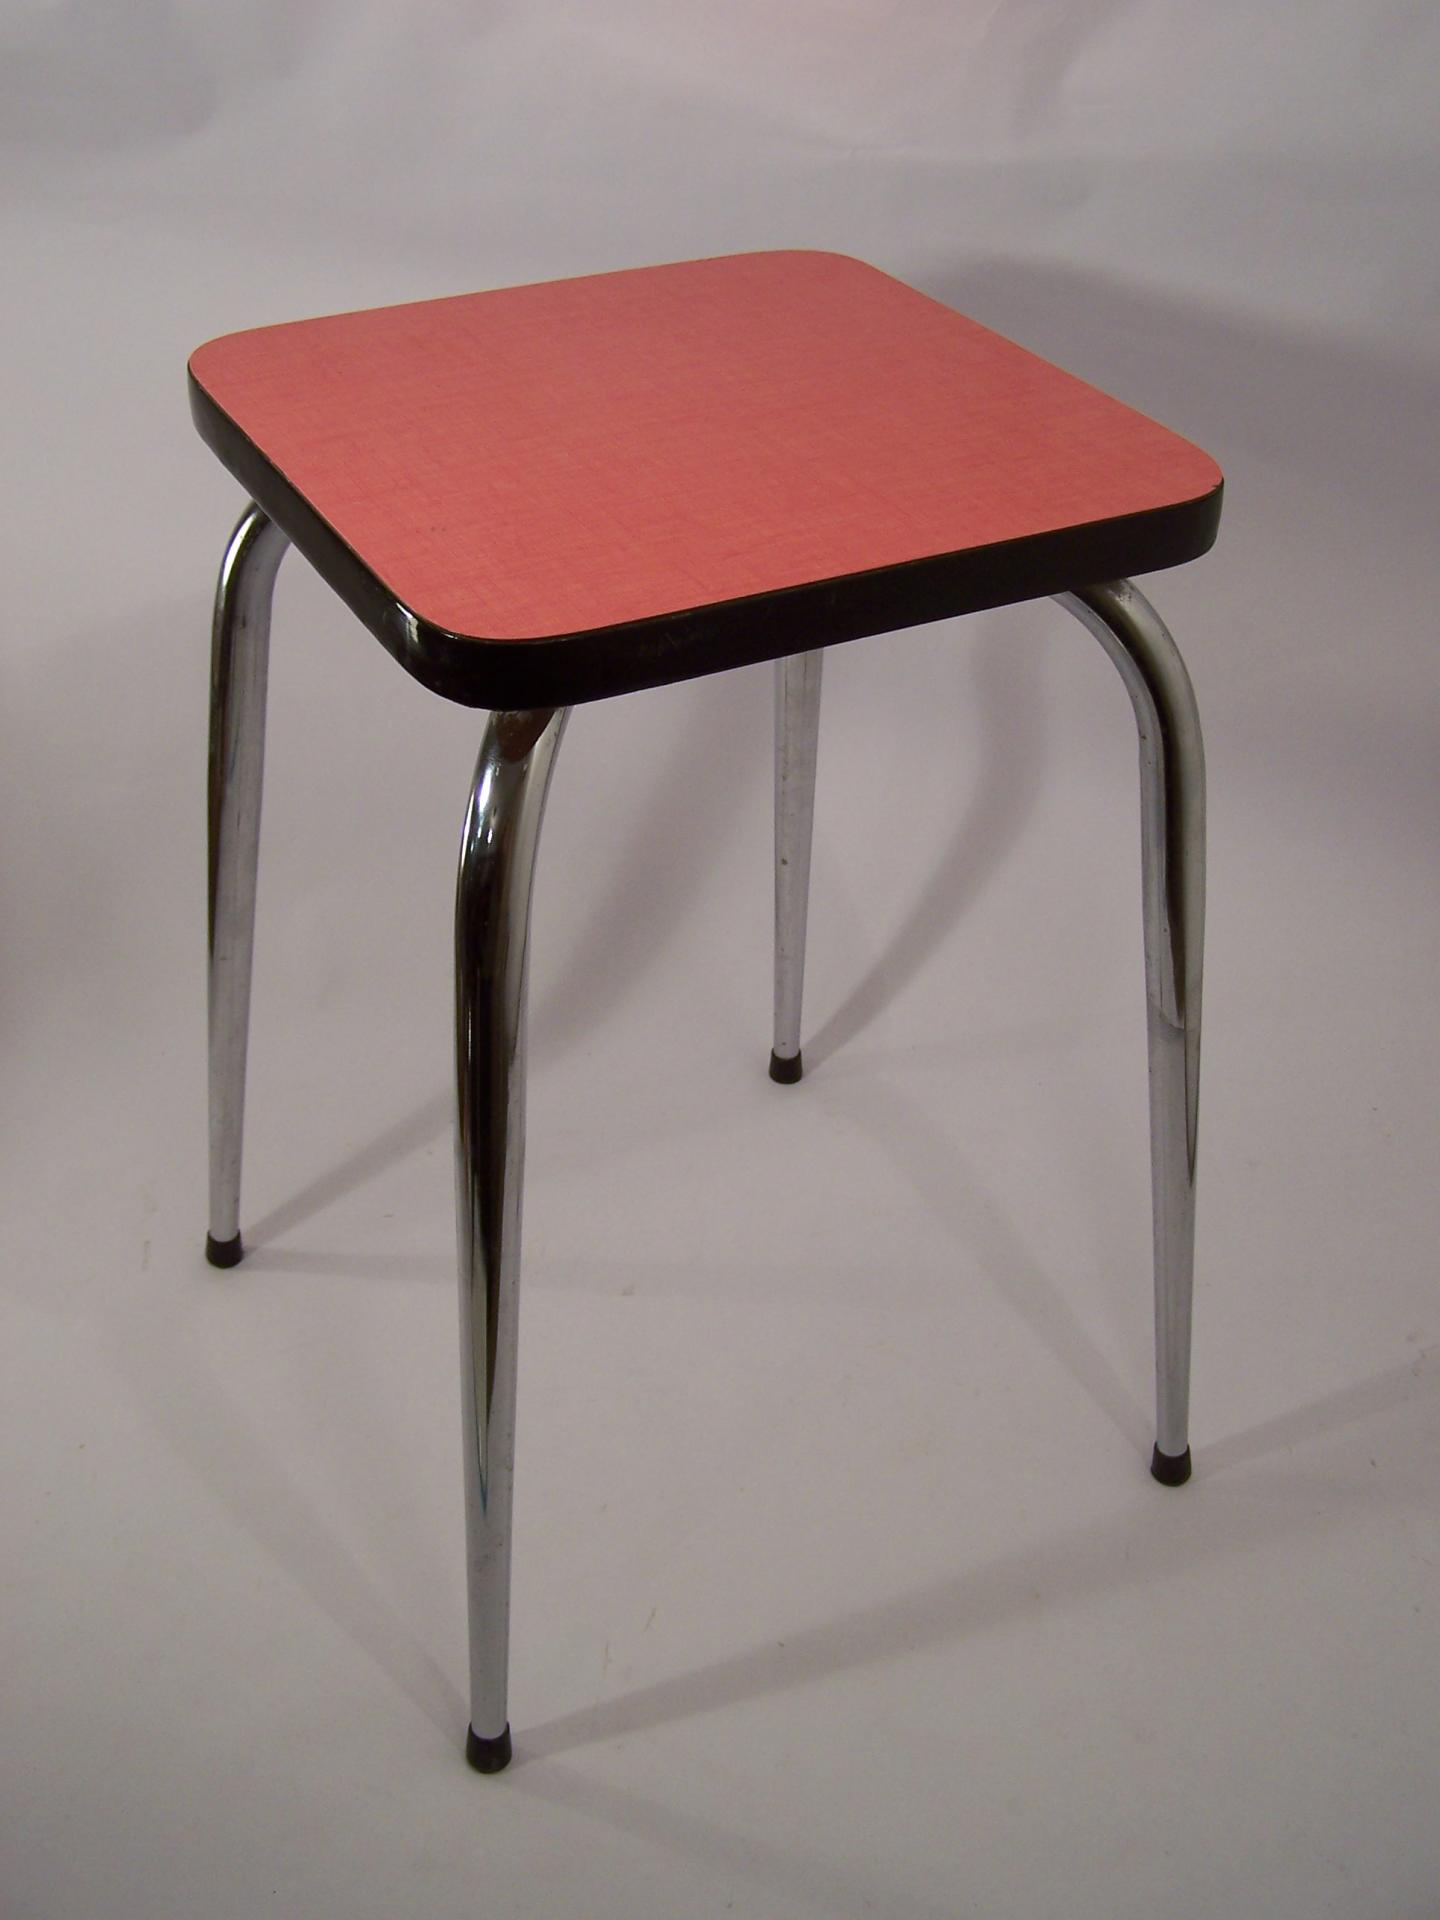 tabouret vintage en formica rouge. Black Bedroom Furniture Sets. Home Design Ideas